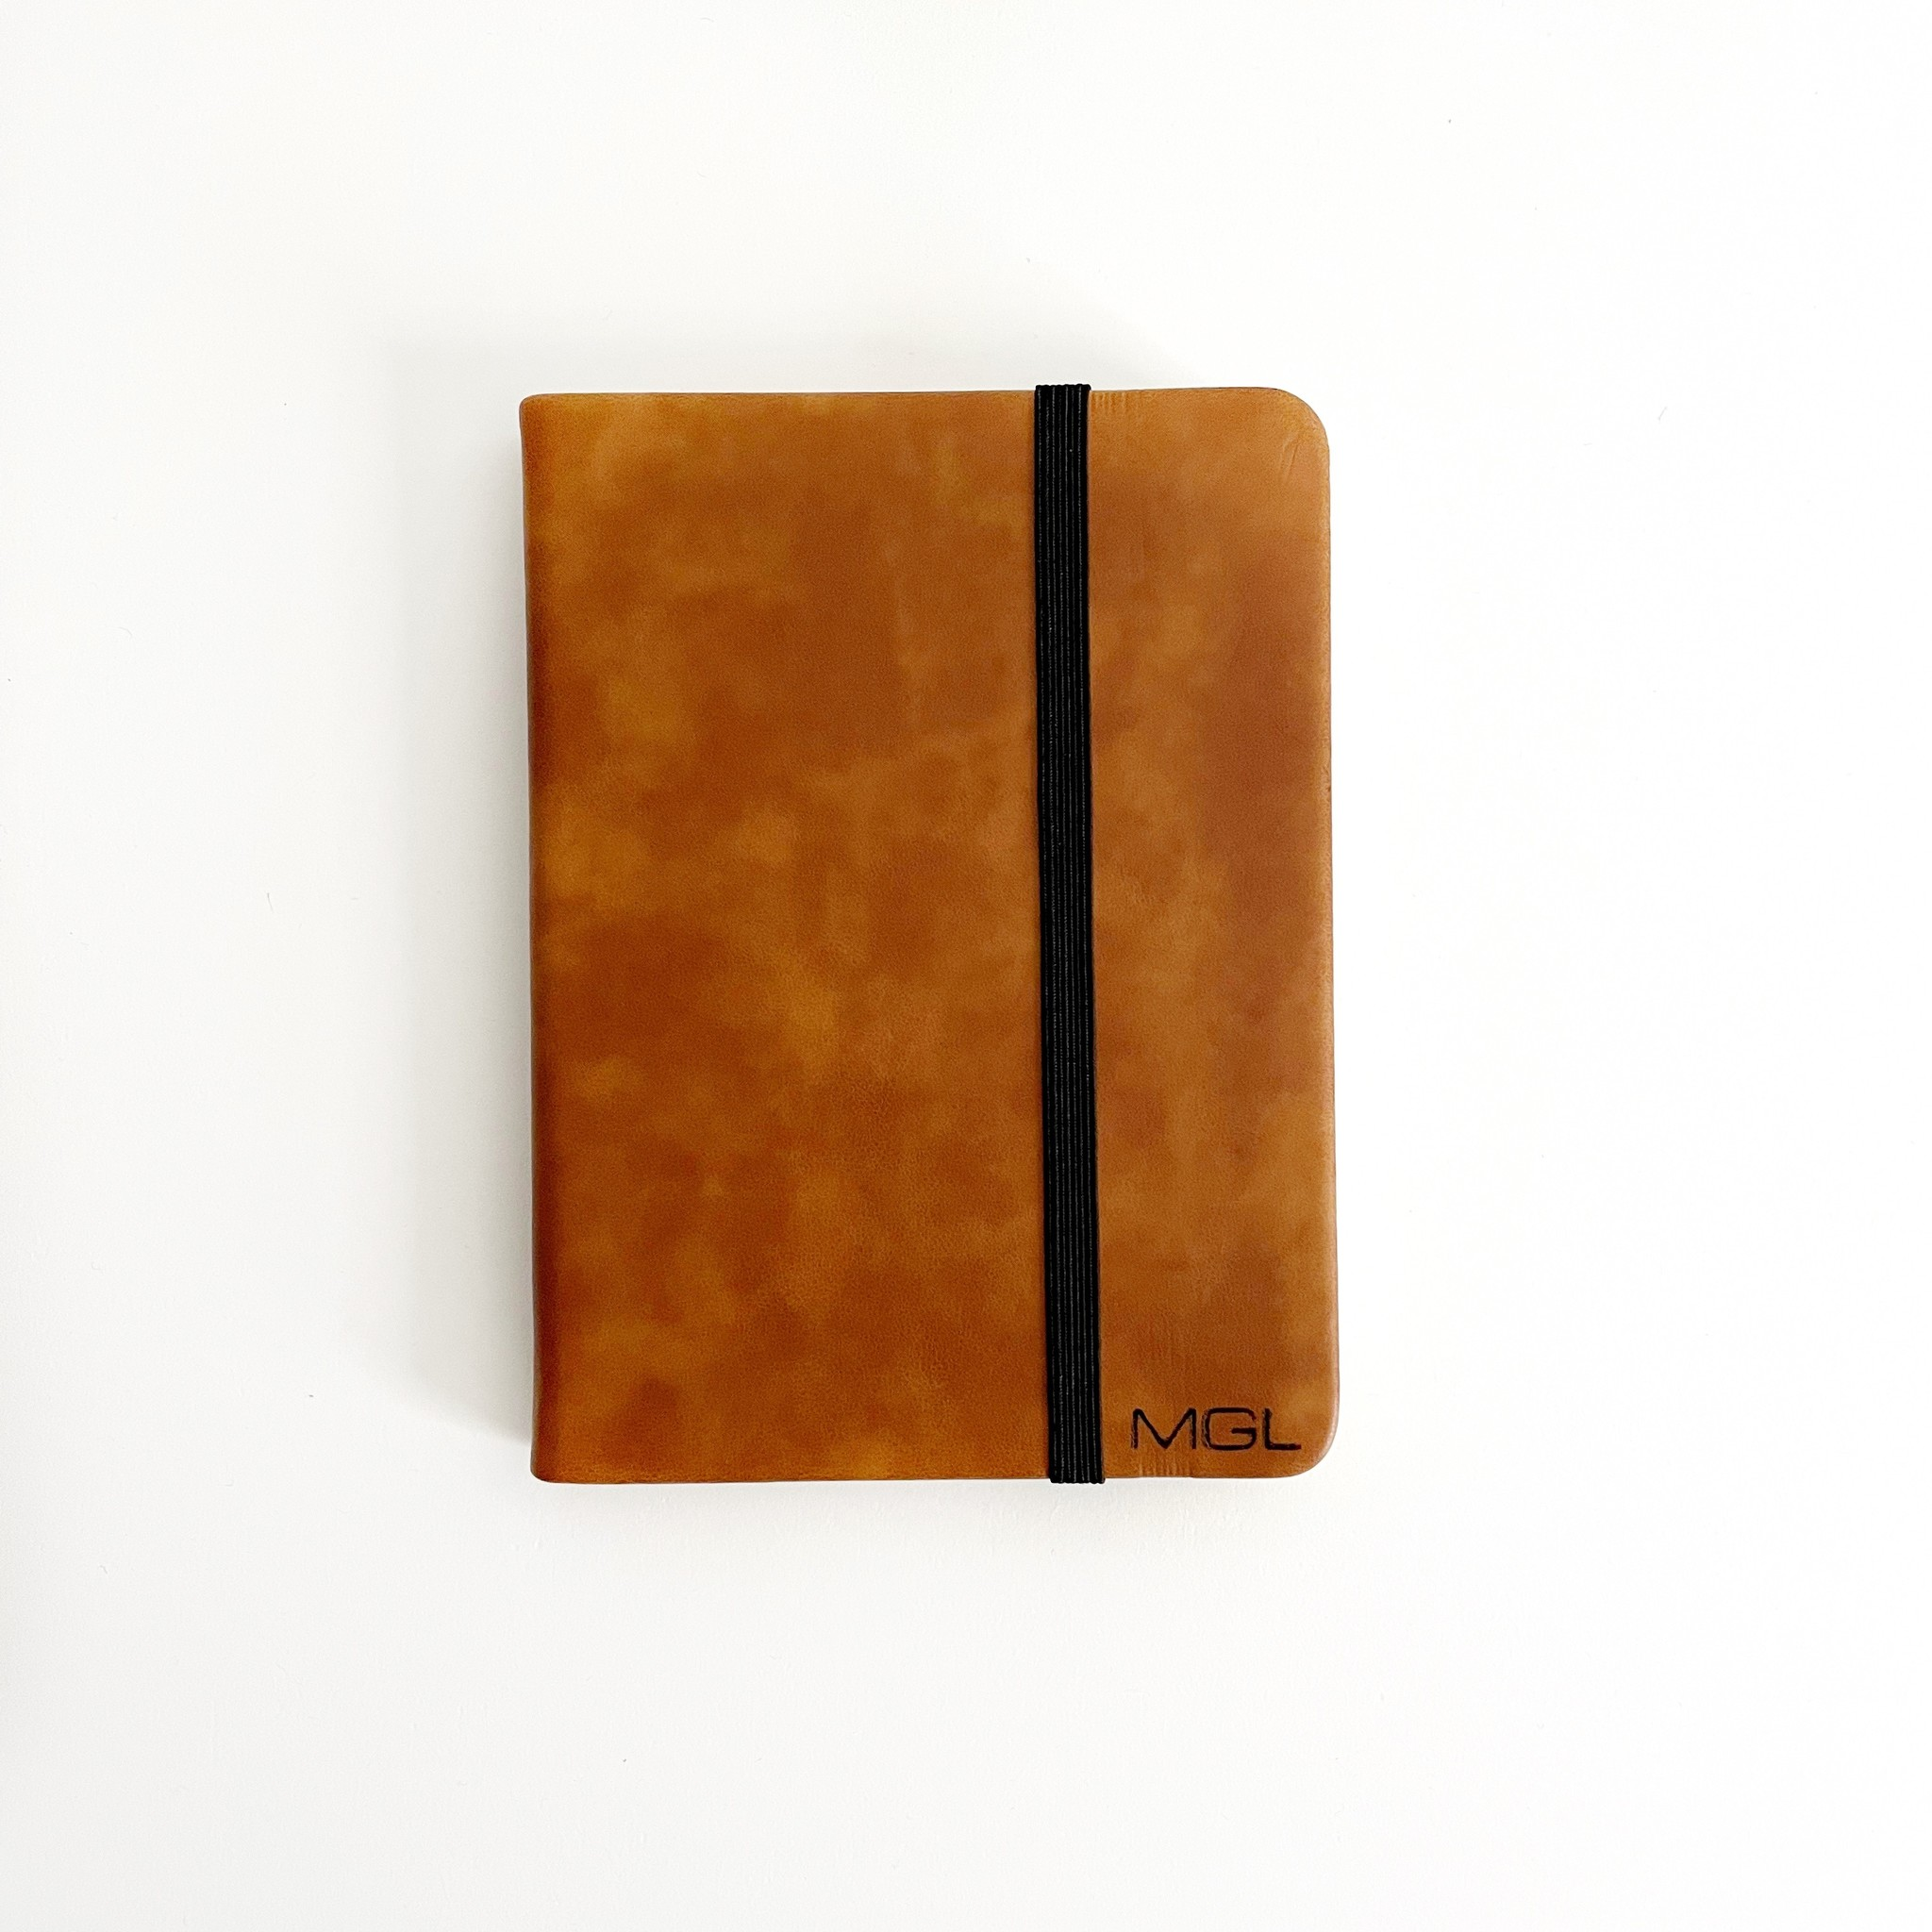 P Graham Dunn Personalized Notebook - Tan - Small